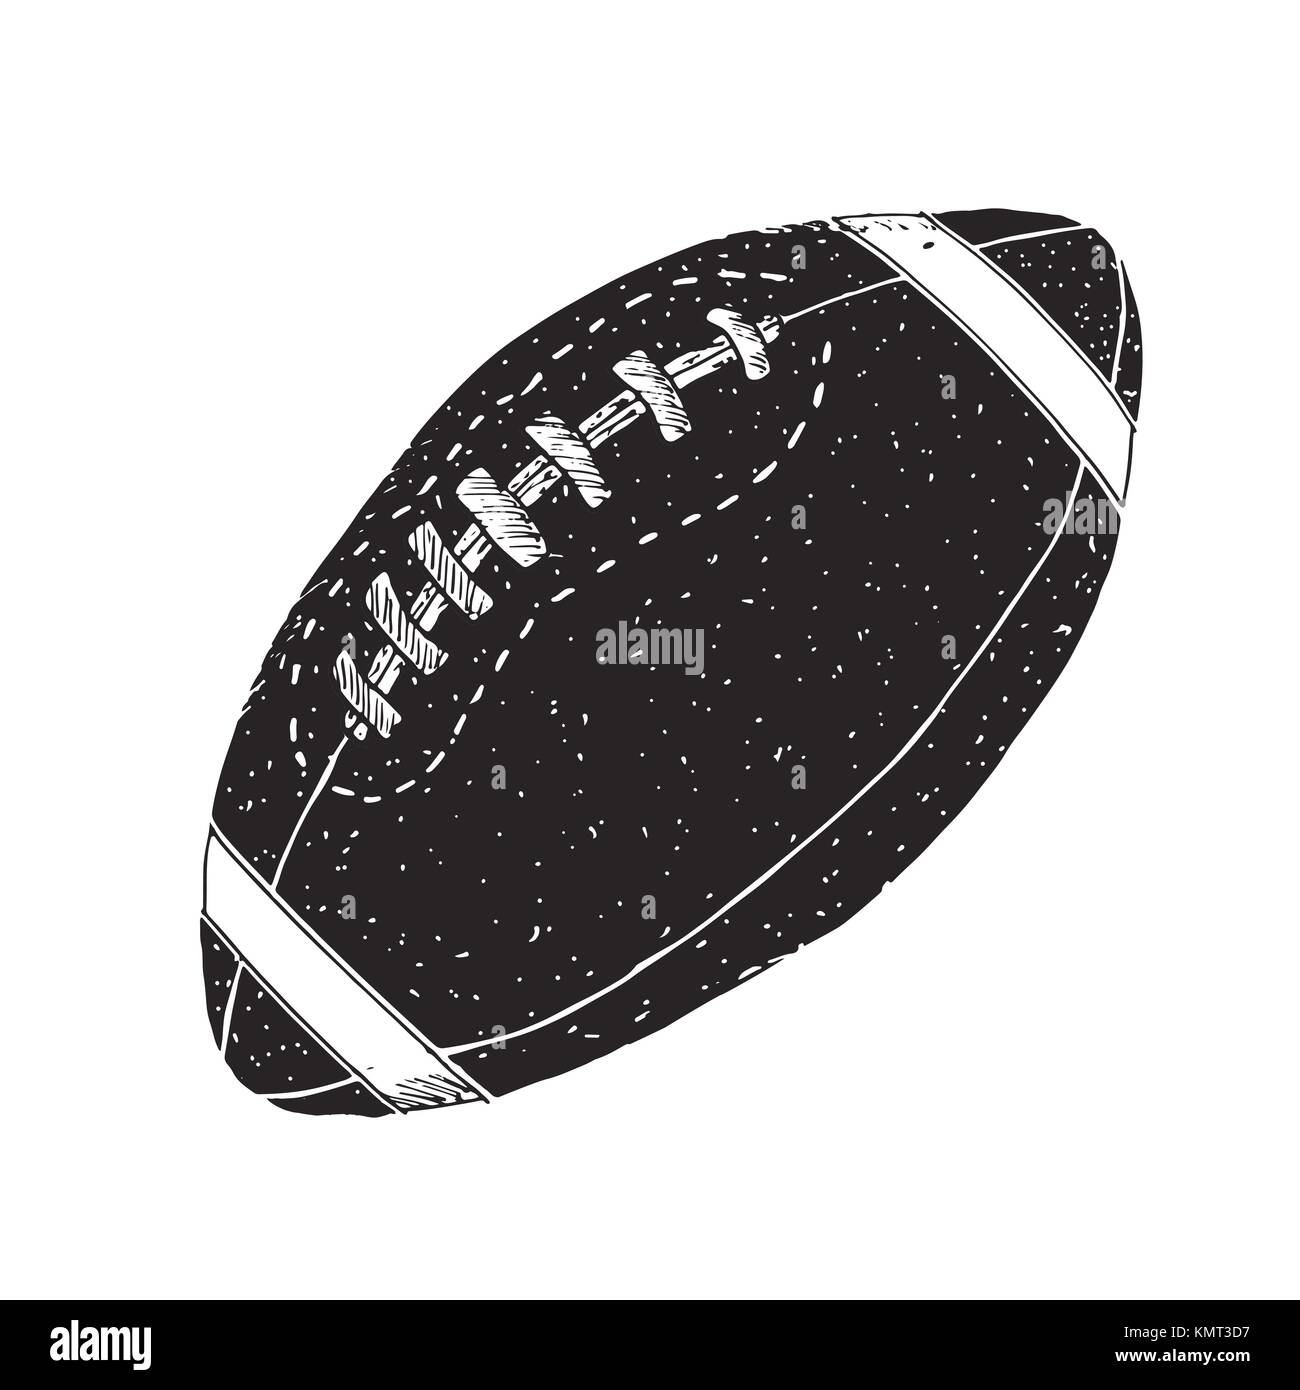 American Football Rugby Ball Hand Drawn Grunge Textured Sketch Stock Vector Image Art Alamy